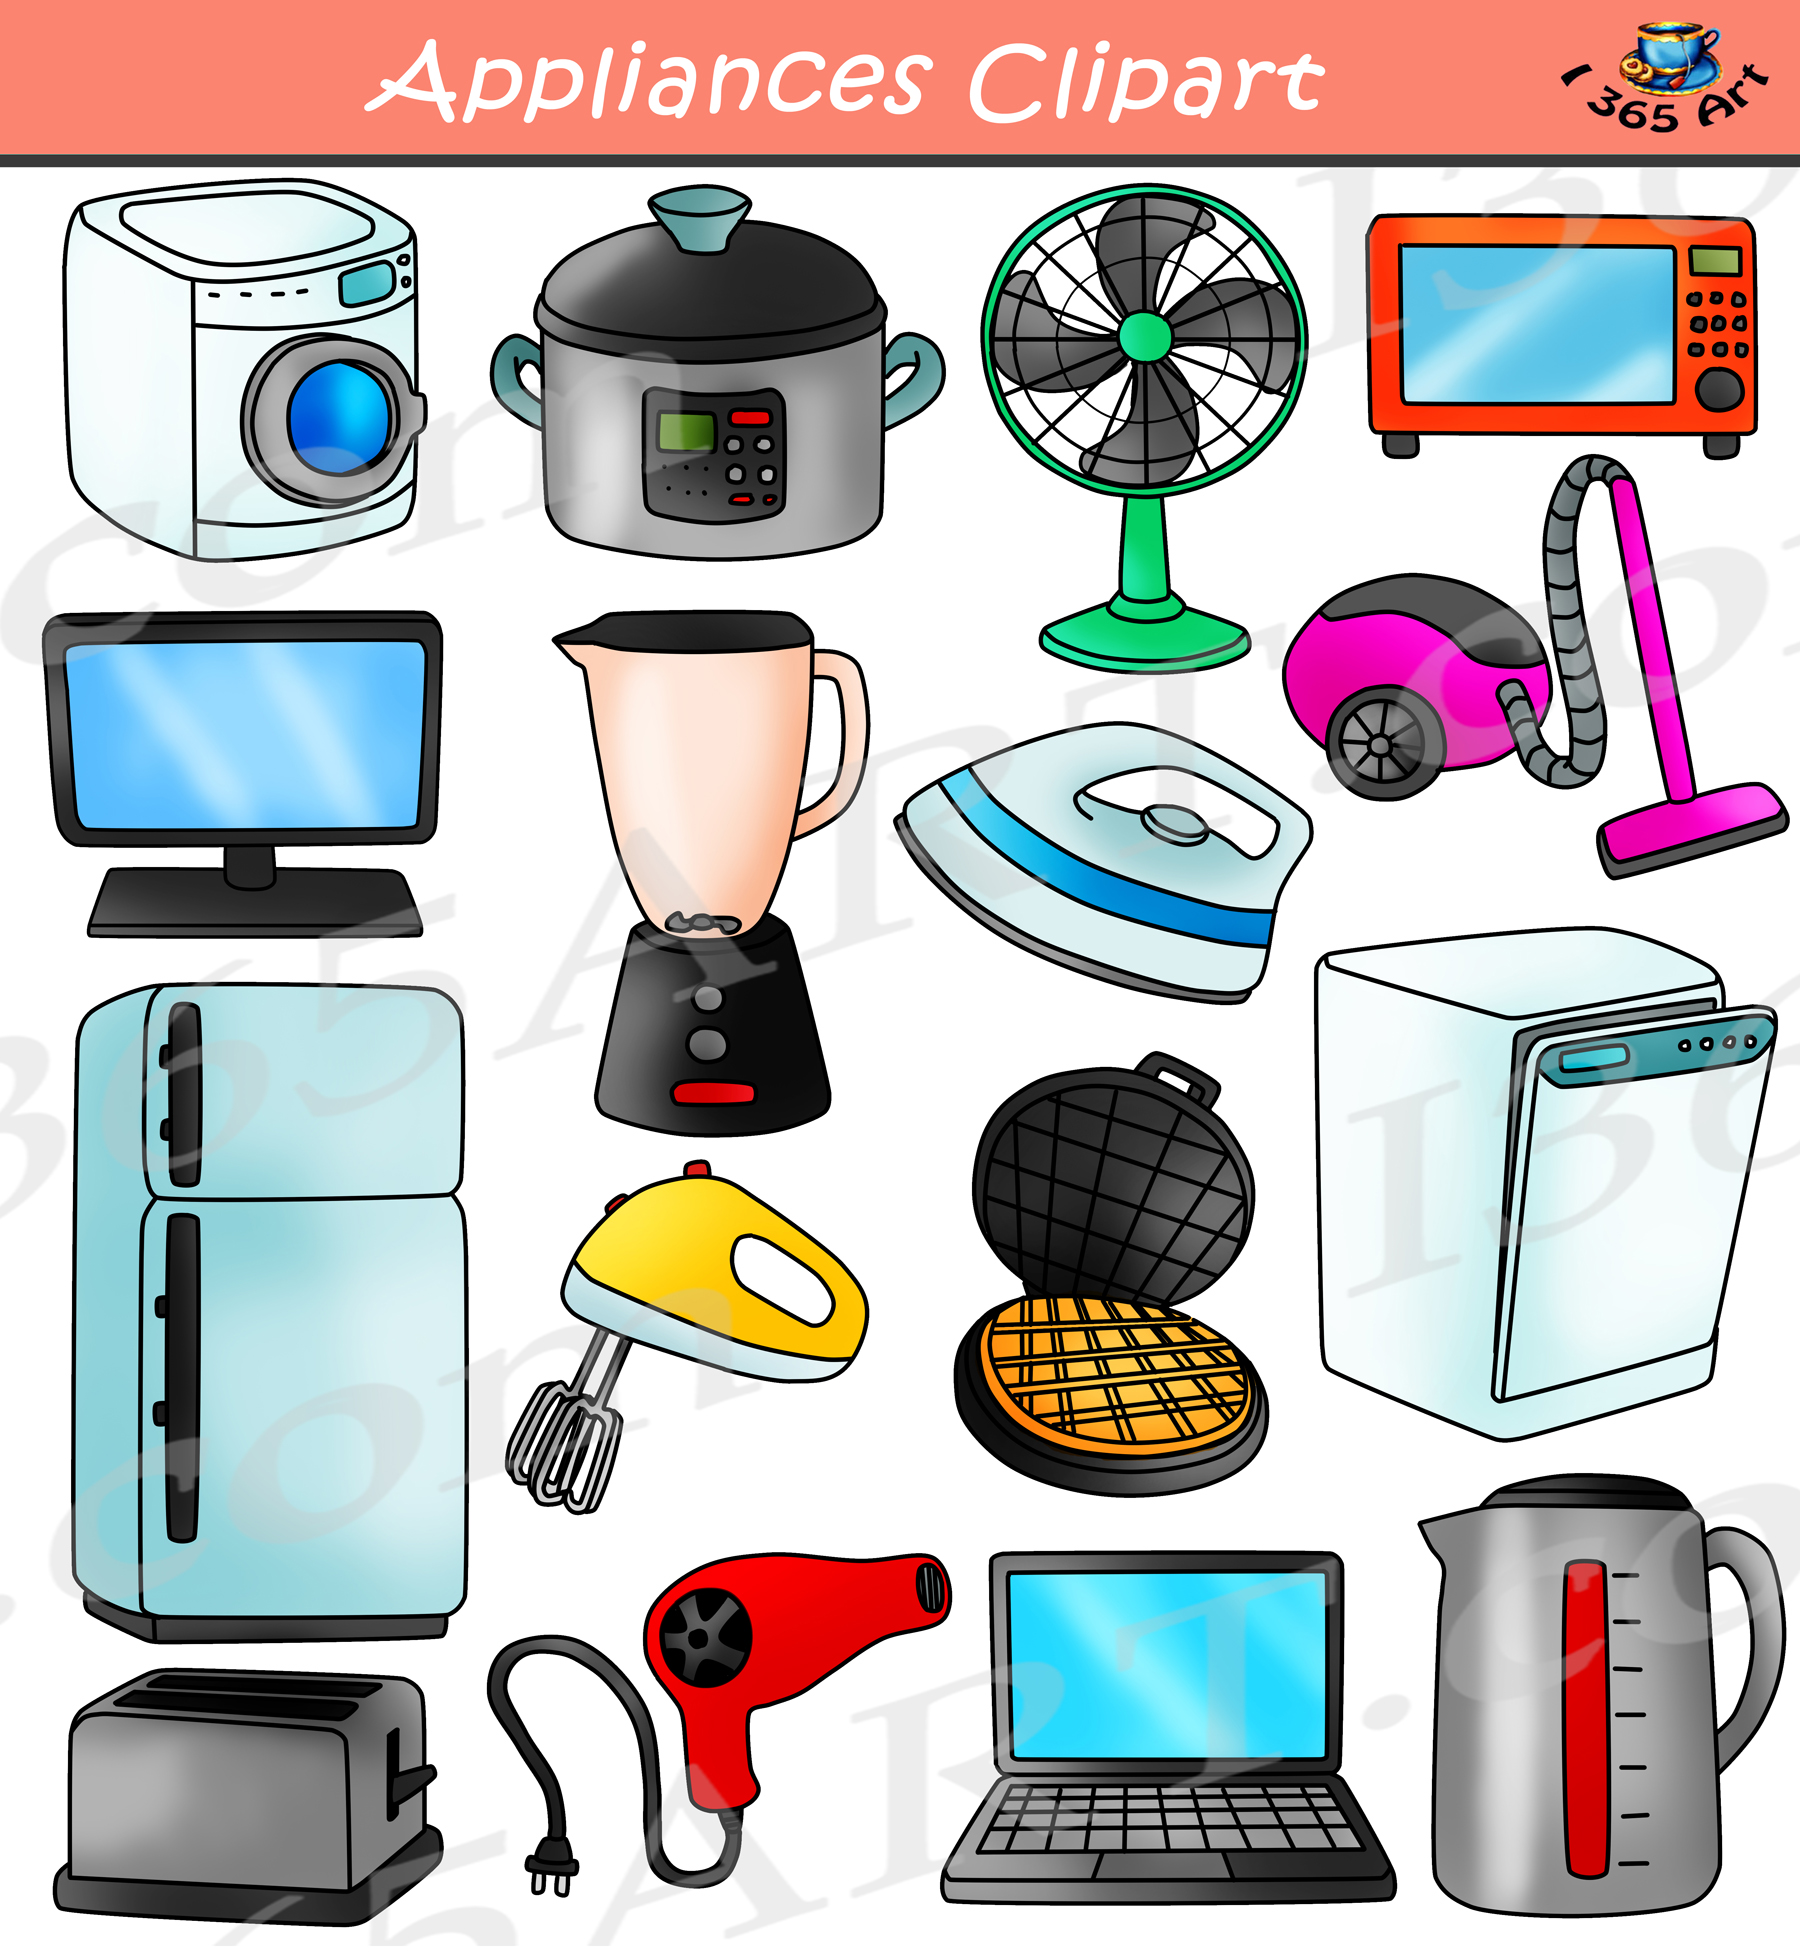 Electronic device clipart clip art freeuse download Appliances Clipart & Electrical Devices School Clipart clip art freeuse download